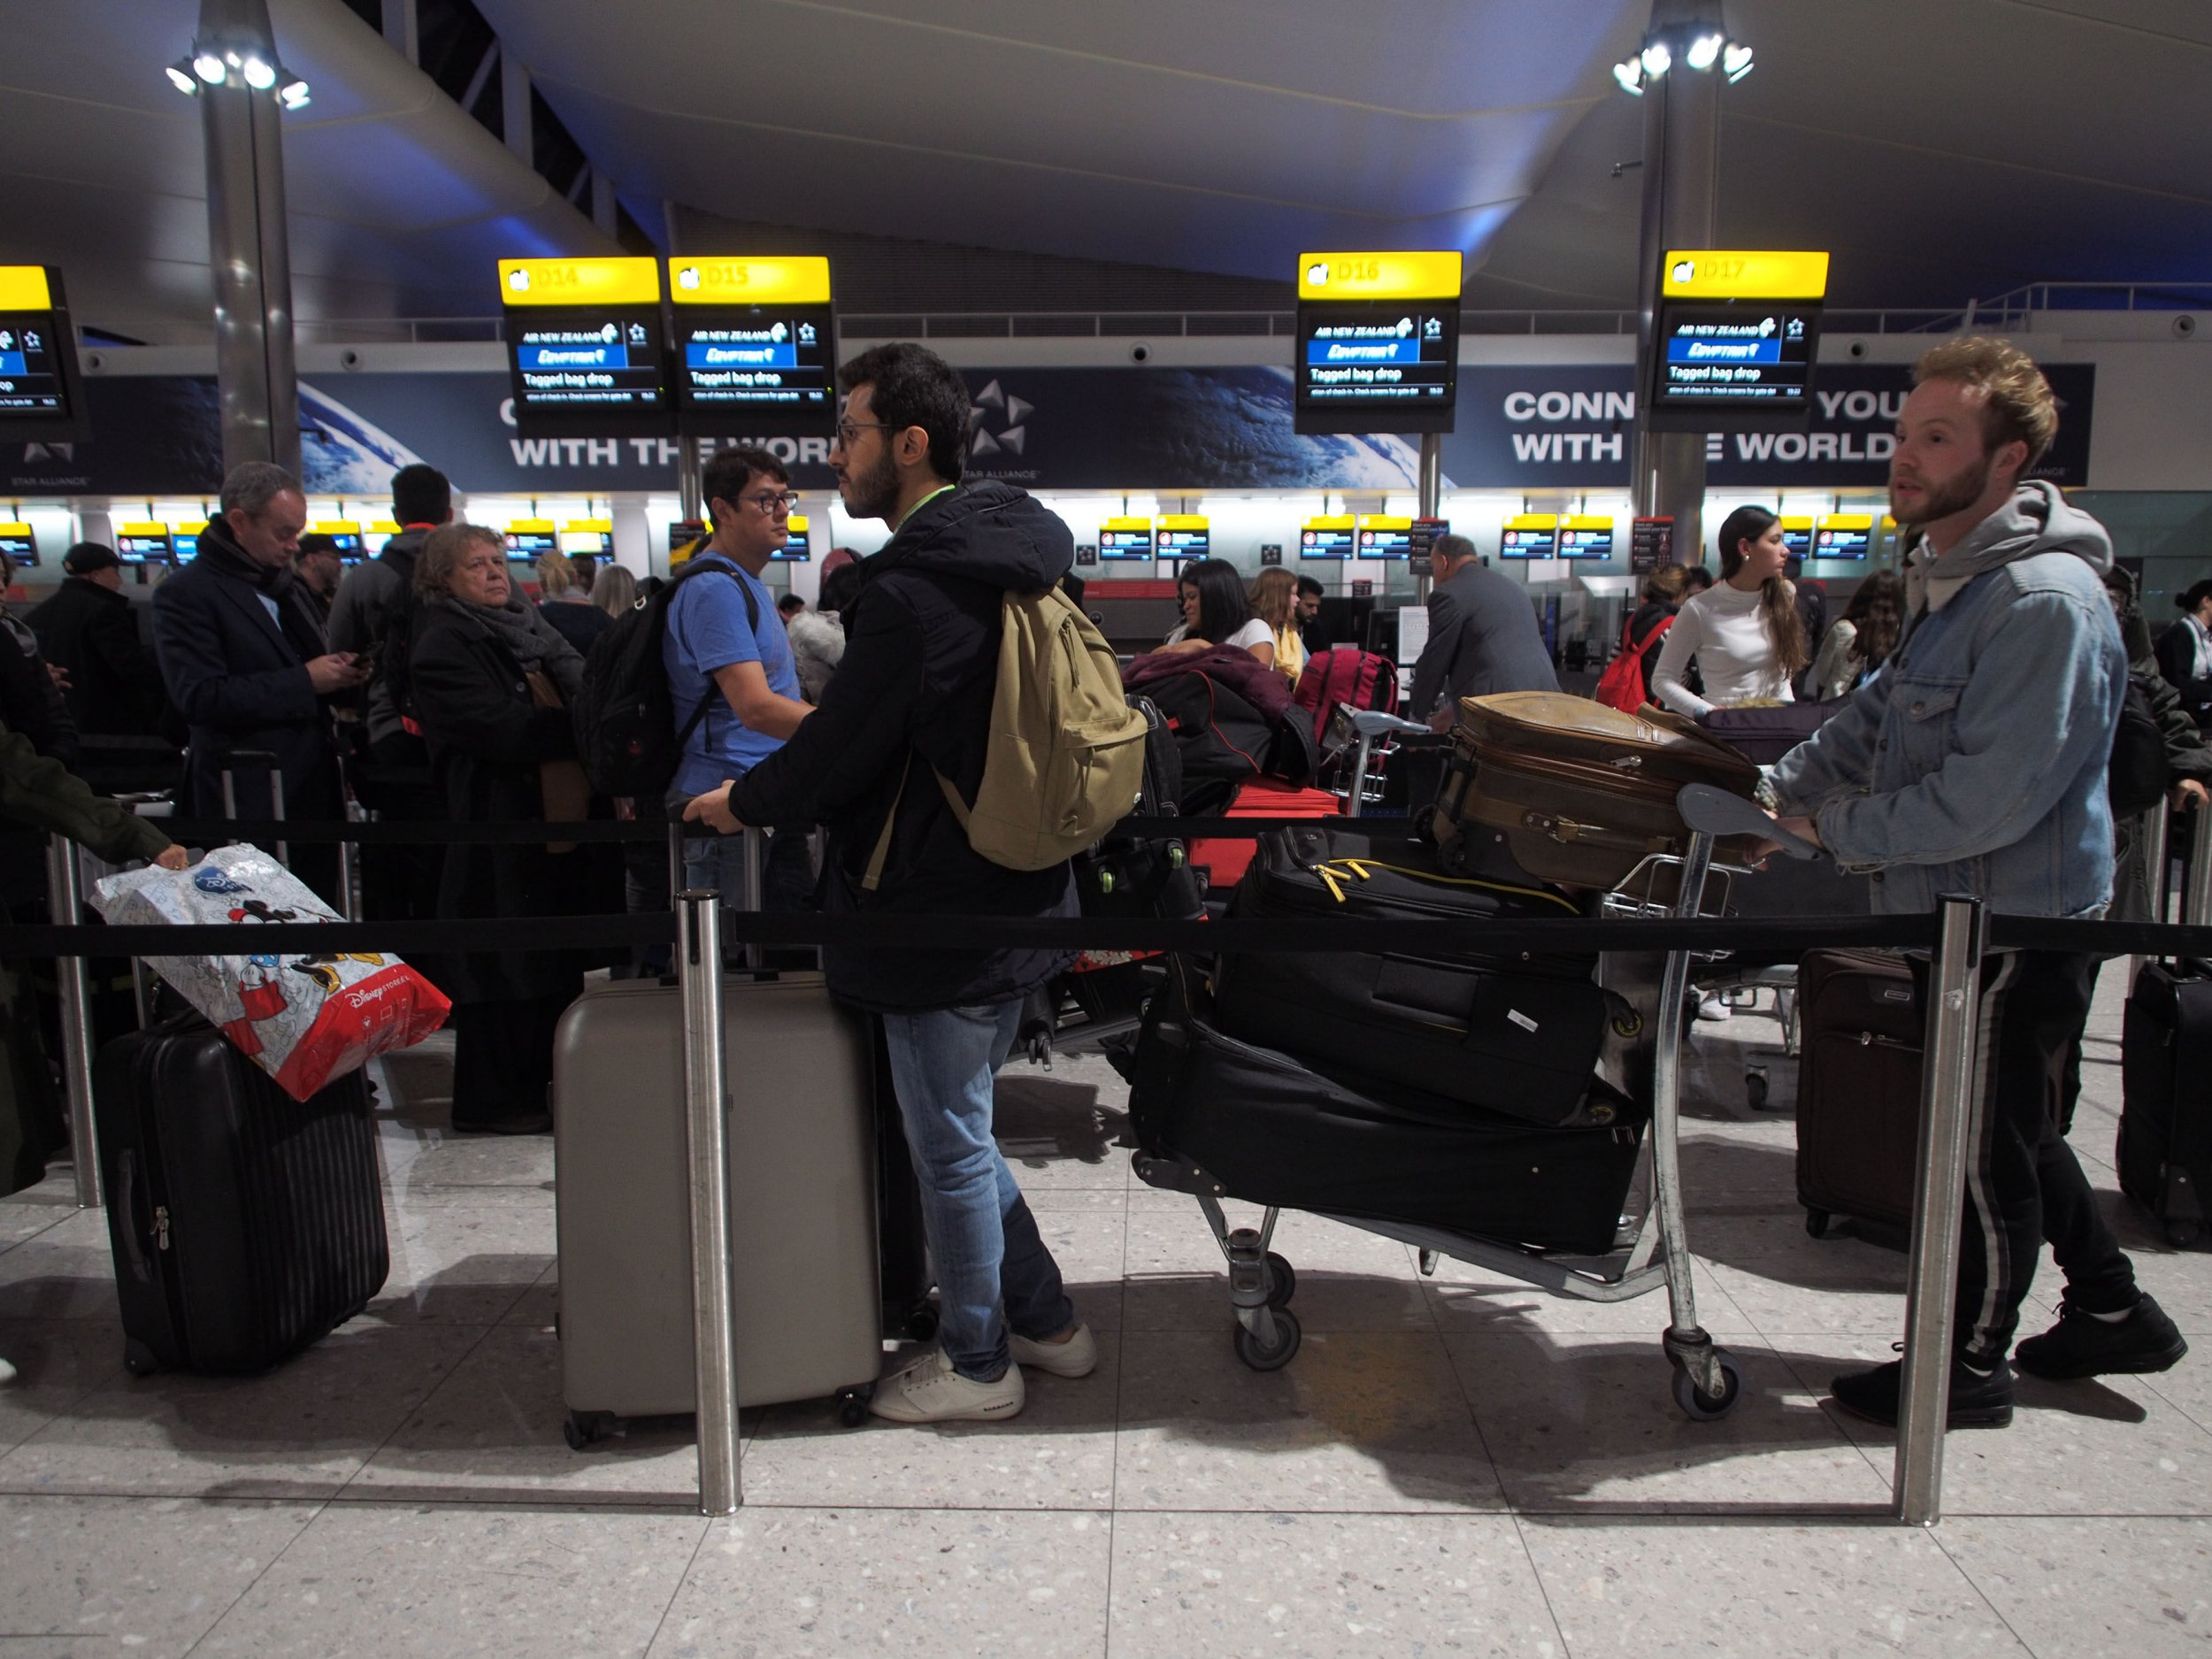 """Passengers in Terminal 2 at Heathrow airport after departures were temporarily suspended following """"reports of drones"""" at the airport. PRESS ASSOCIATION Photo. Picture date: Tuesday January 8, 2019. The west London hub apologised for any disruption caused to passengers after flights were suspended for around an hour. See PA story AIR Drone. Photo credit should read: Yui Mok/PA Wire"""